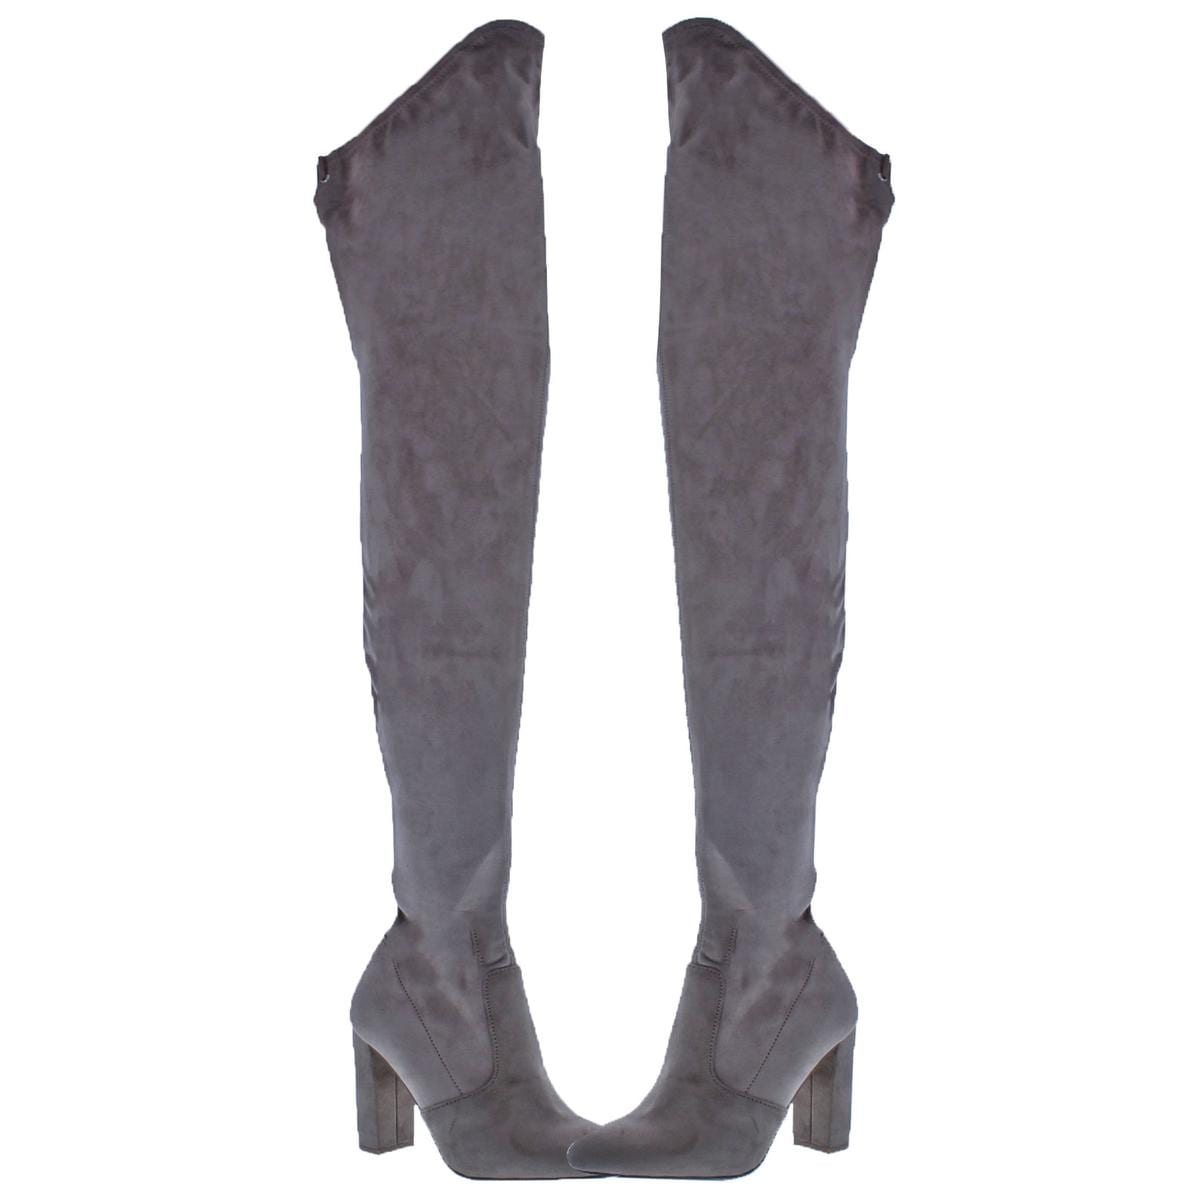 af0cad4727f Shop Steve Madden Womens Elektric Thigh-High Boots Faux Suede Tall - Free  Shipping Today - Overstock - 24030625